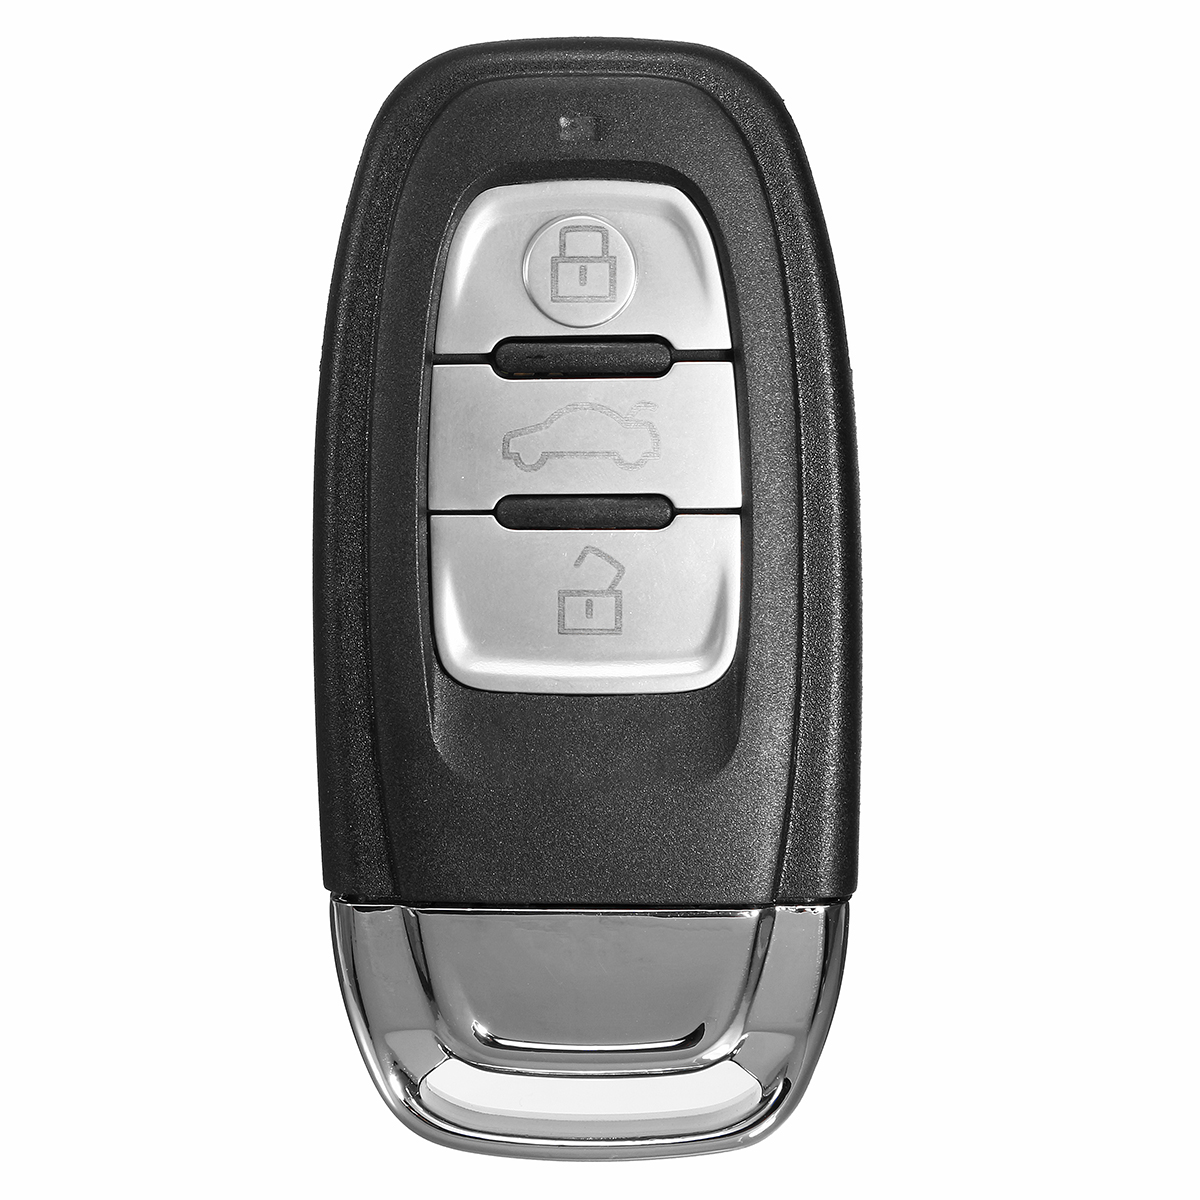 3 Buttons 315MHz Remote Key Fob With Battery For Audi A4